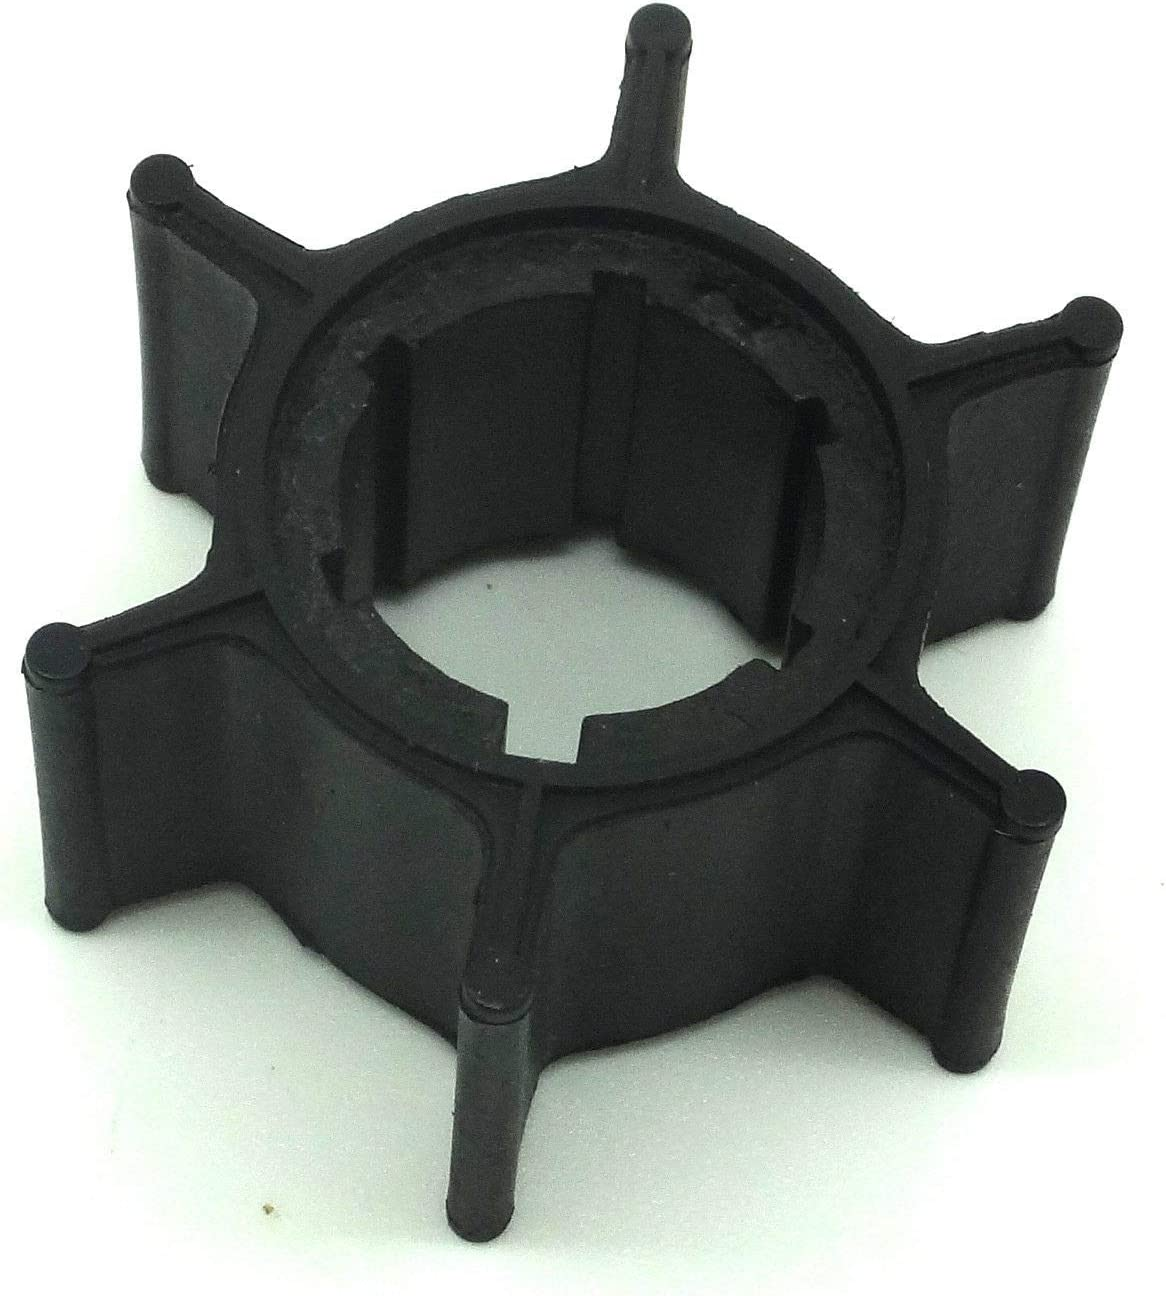 ConPus Boat Motor Parts Water Pump Impeller 655-44352-09 for Yamaha 2-Stroke 6HP 8HP Outboard Engine 6A / 8A / P165